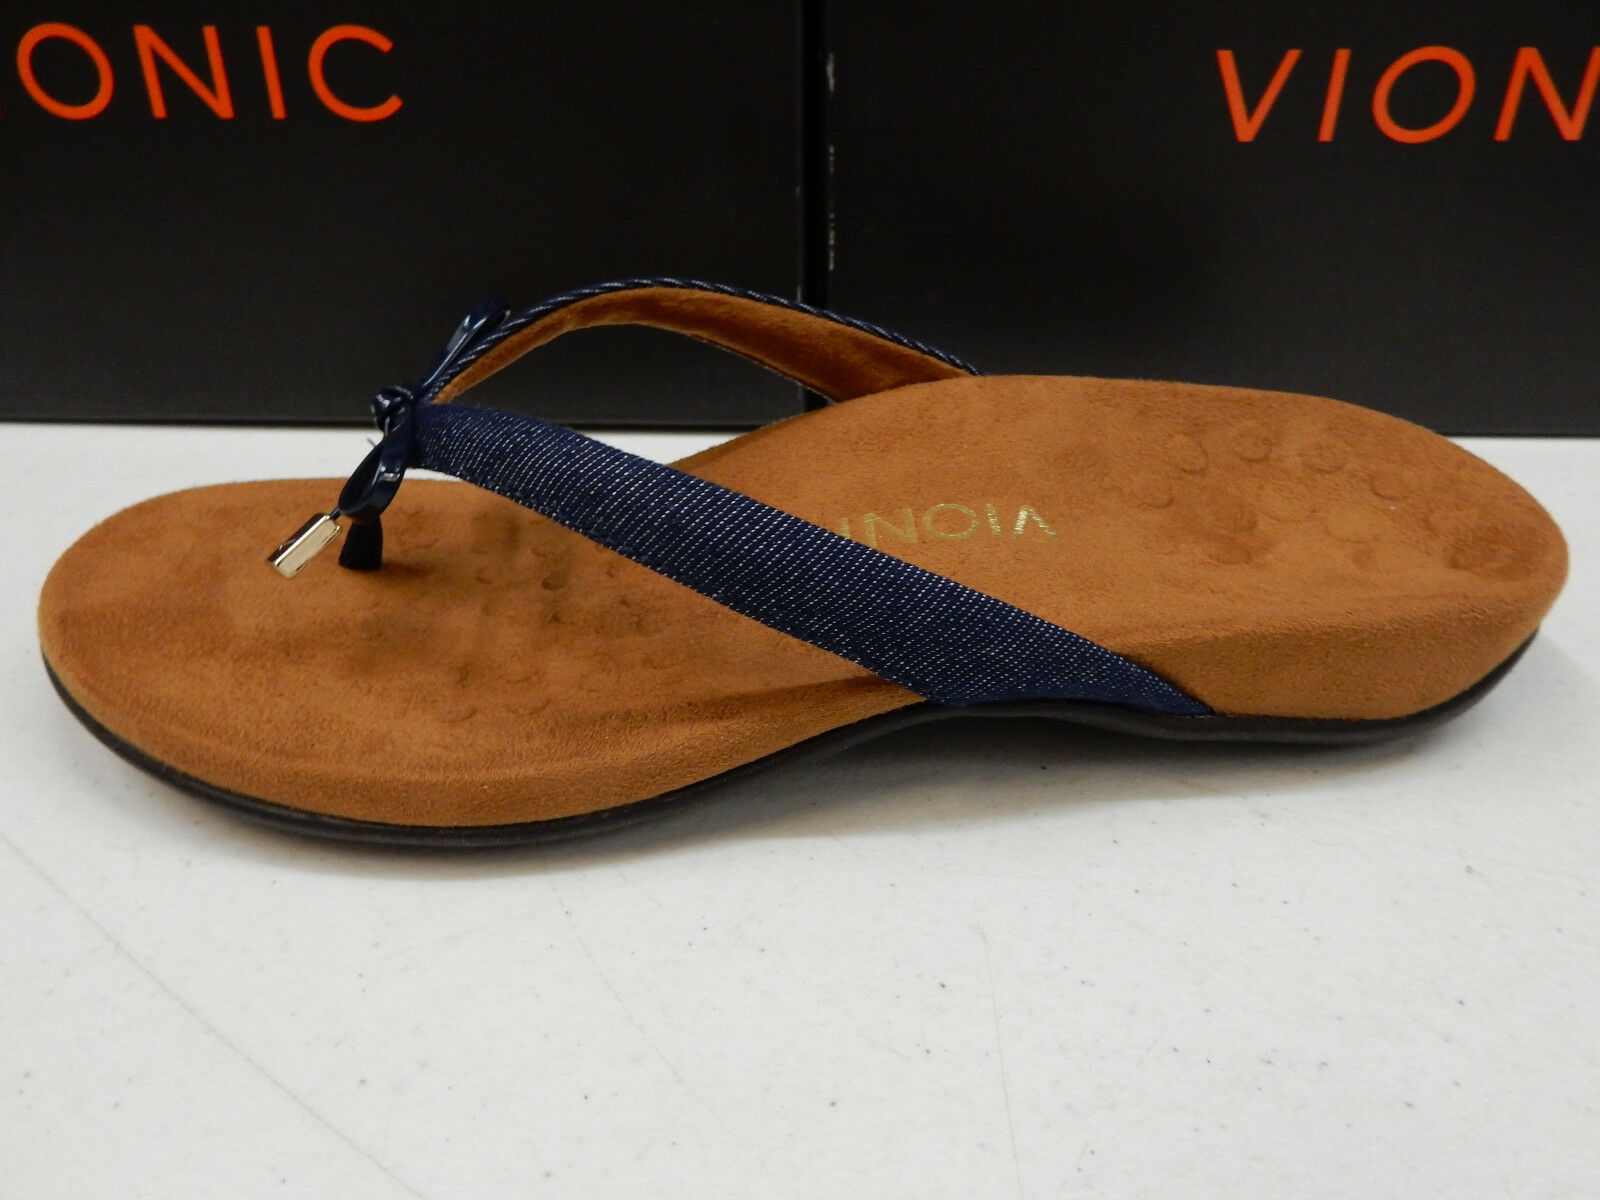 VIONIC WOMENS SANDALS BELLA II DENIM SIZE SIZE SIZE 10 536e5d